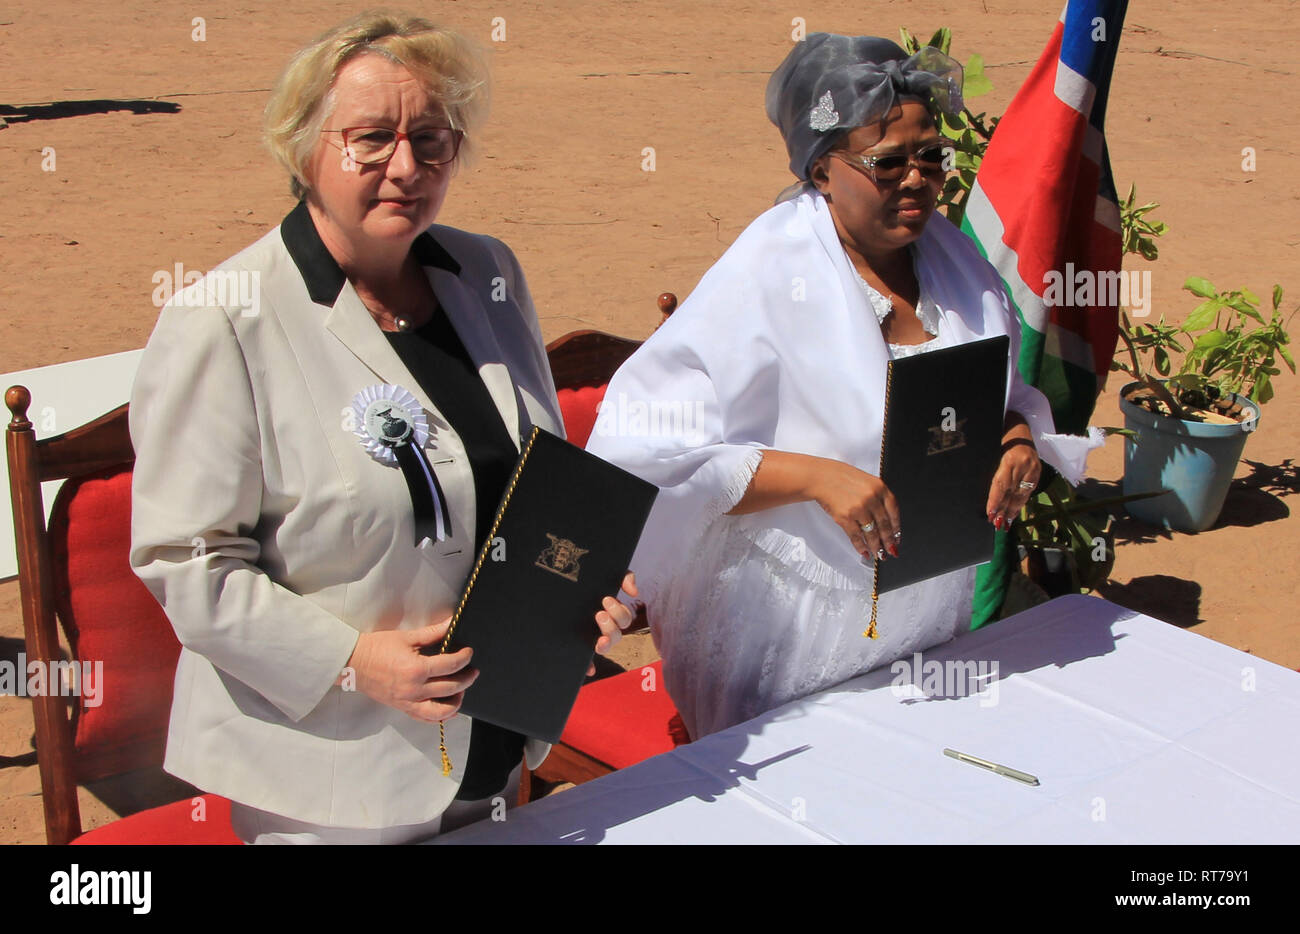 HANDOUT - 28 February 2019, Namibia, Gibeon: Baden-Württemberg's Science Minister Theresia Bauer (Greens) and Namibia's Education Minister Katrina Hanse-Himarwa handing over cultural assets stolen during colonial times. The two objects, a whip and a Bible, belonged to Hendrik Witbooi, a leader of the Nama people and Namibian national hero. So far they have been stored in the Linden Museum in Stuttgart. (to dpa 'Baden-Württemberg gives important cultural assets back to Namibia' from 28.02.2019) Photo: Frank Steffen/Allgemeine Zeitung Namibia/dpa - ATTENTION: Only for editorial use in connecti - Stock Image